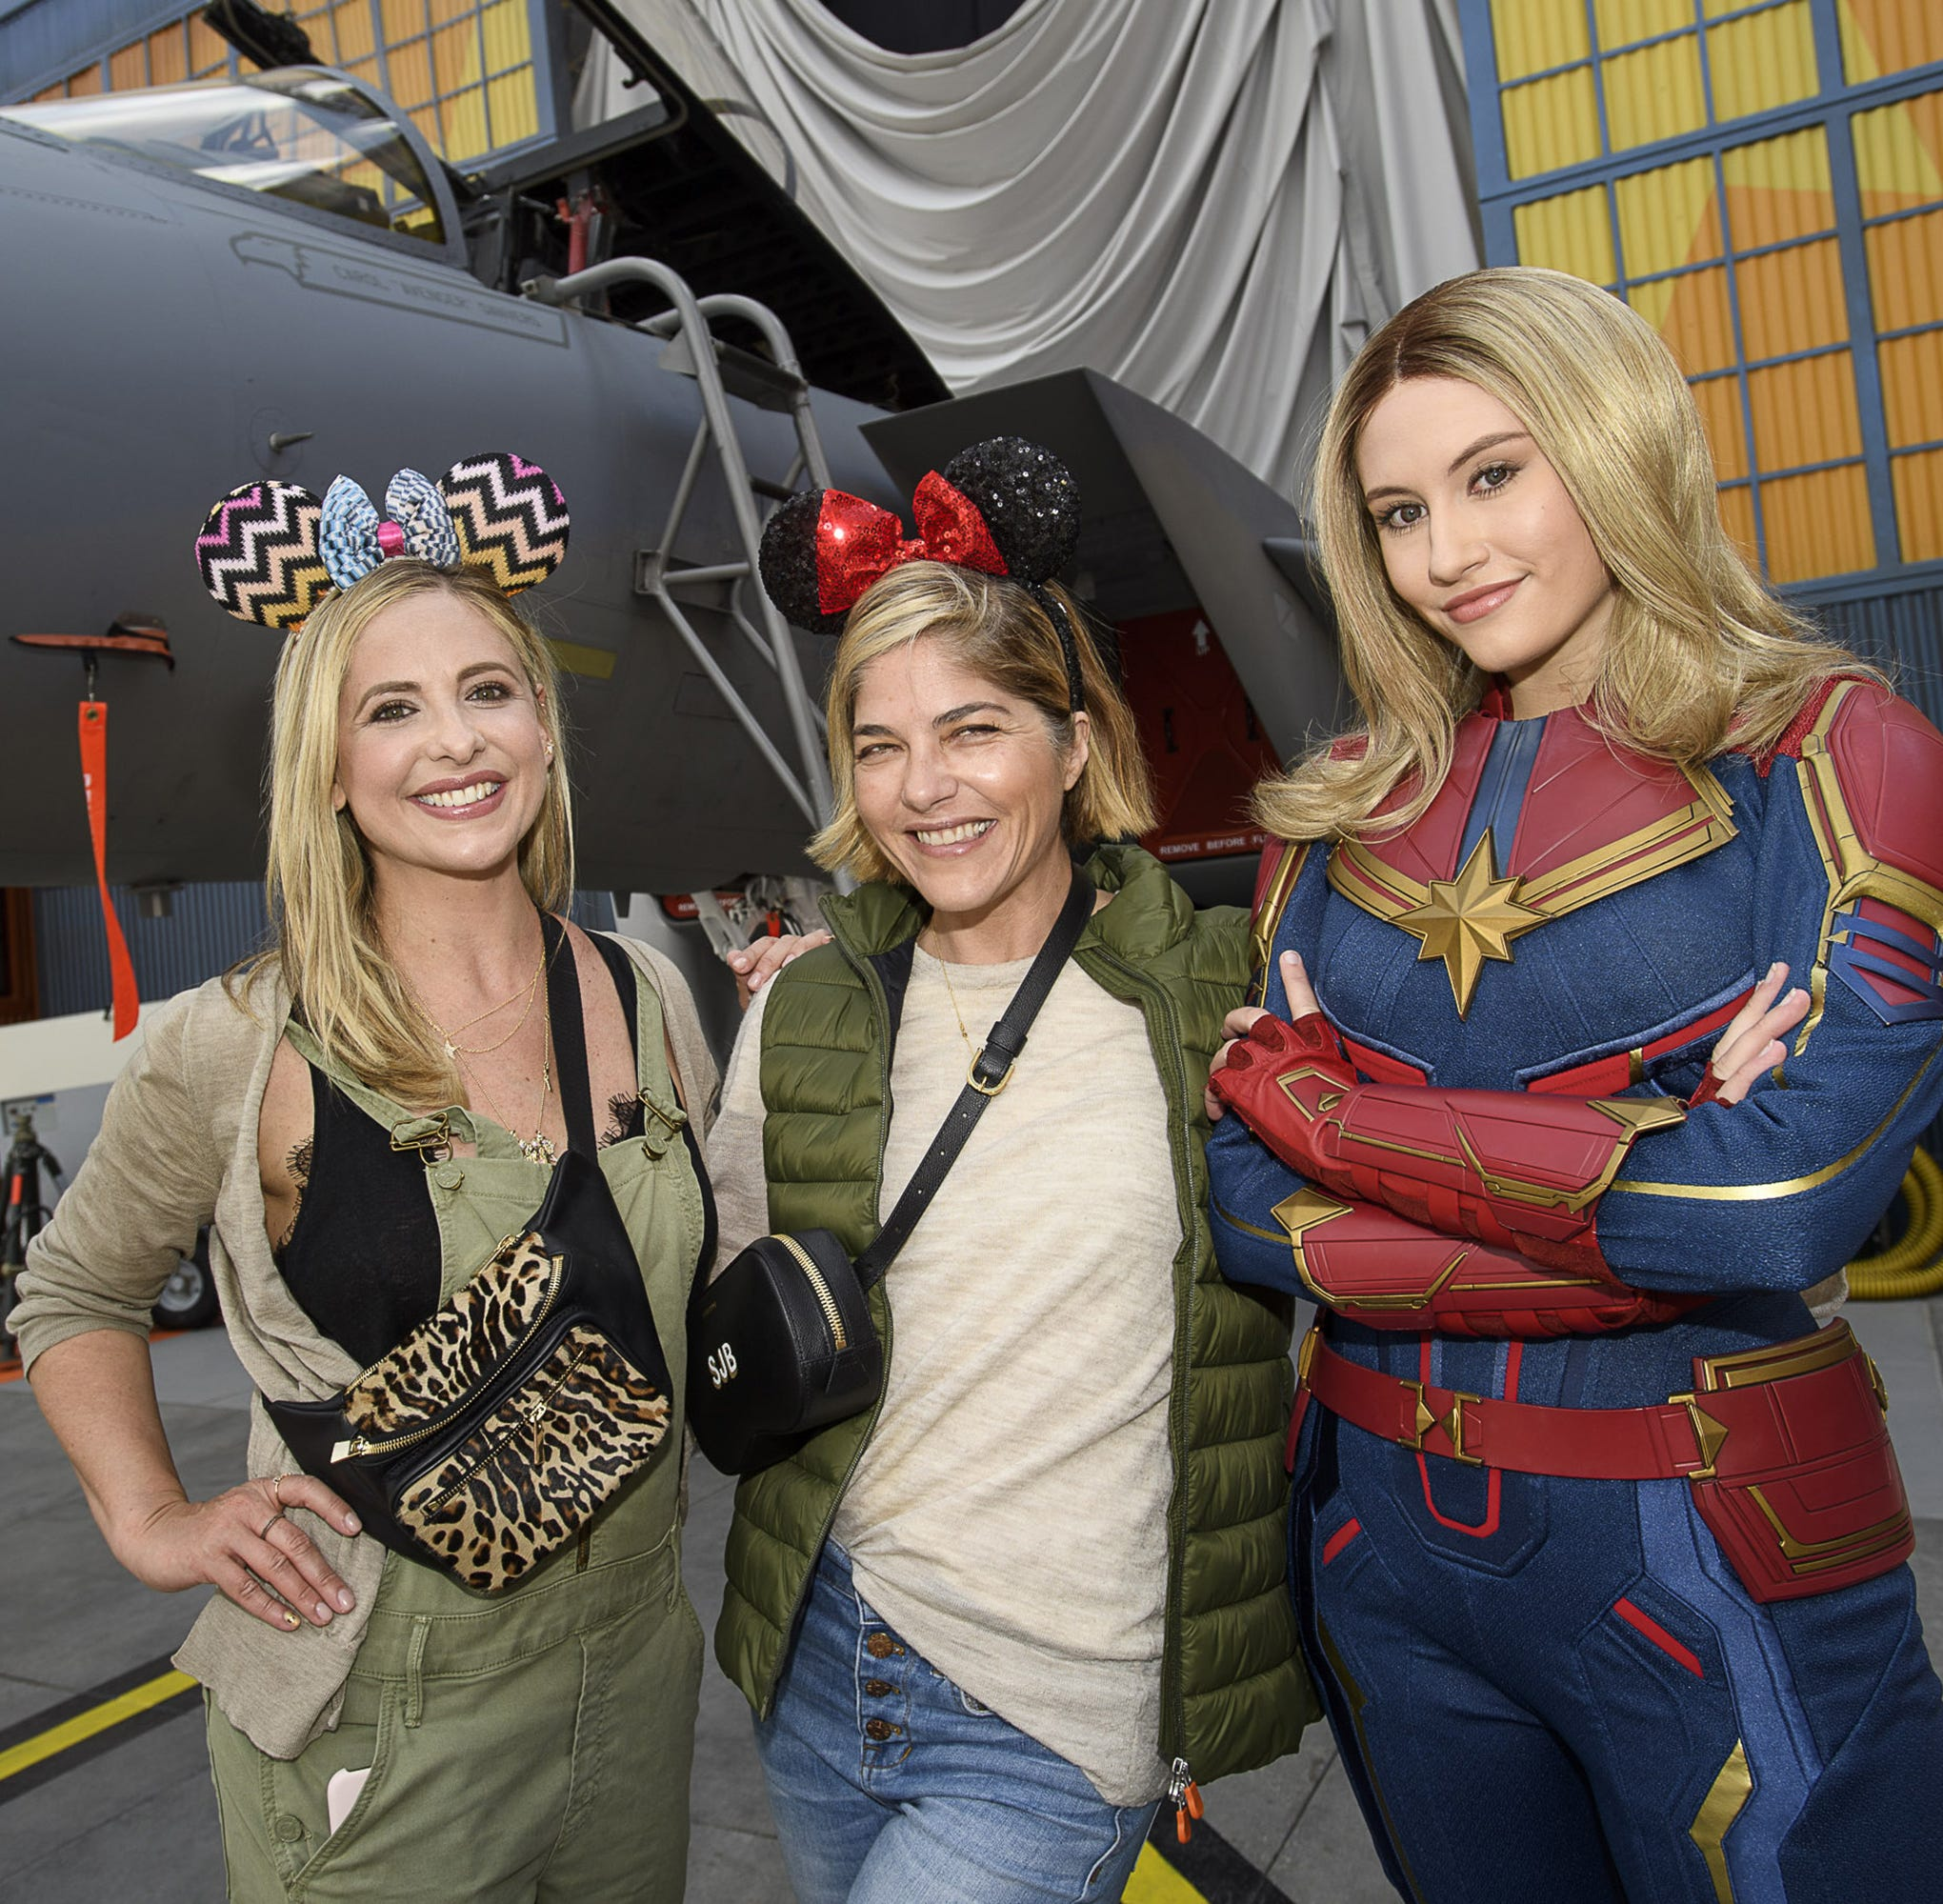 ANAHEIM, CA  MARCH 28:  In this handout photo provided by Disneyland Resort, actresses and friends Sarah Michelle Gellar (left) and Selma Blair share a special moment with Captain Marvel at Disney California Adventure Park on March 28, 2019 in Anaheim, California. The friends were celebrating over 20 years of friendship while visiting Disneyland Resort. (Photo by Richard Harbaugh/Disneyland Resort via Getty Images) ORG XMIT: 775306367 ORIG FILE ID: 1133282941